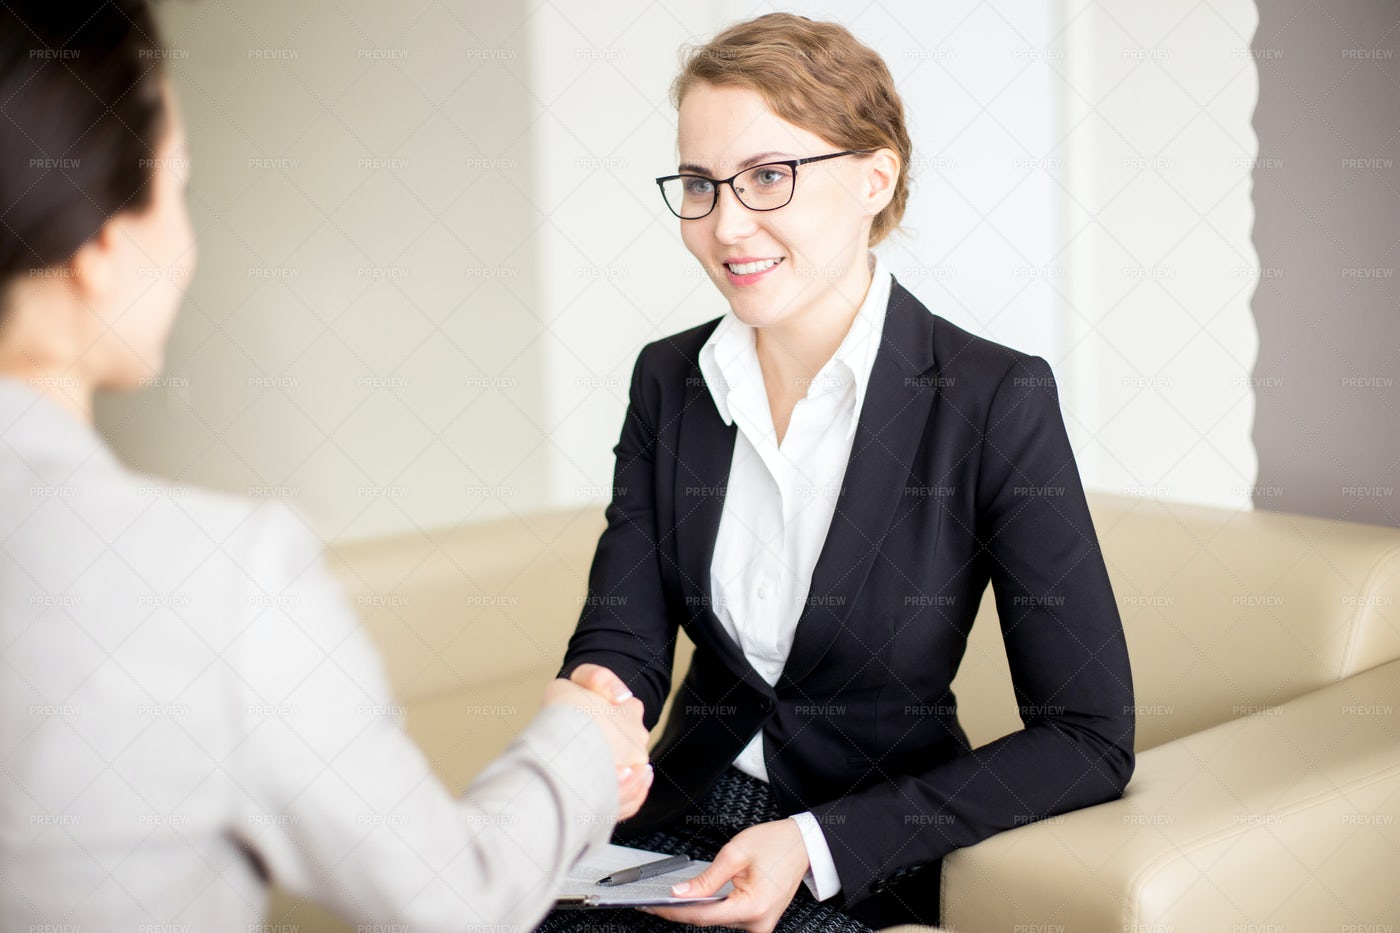 Shaking Hands With Business Partner: Stock Photos